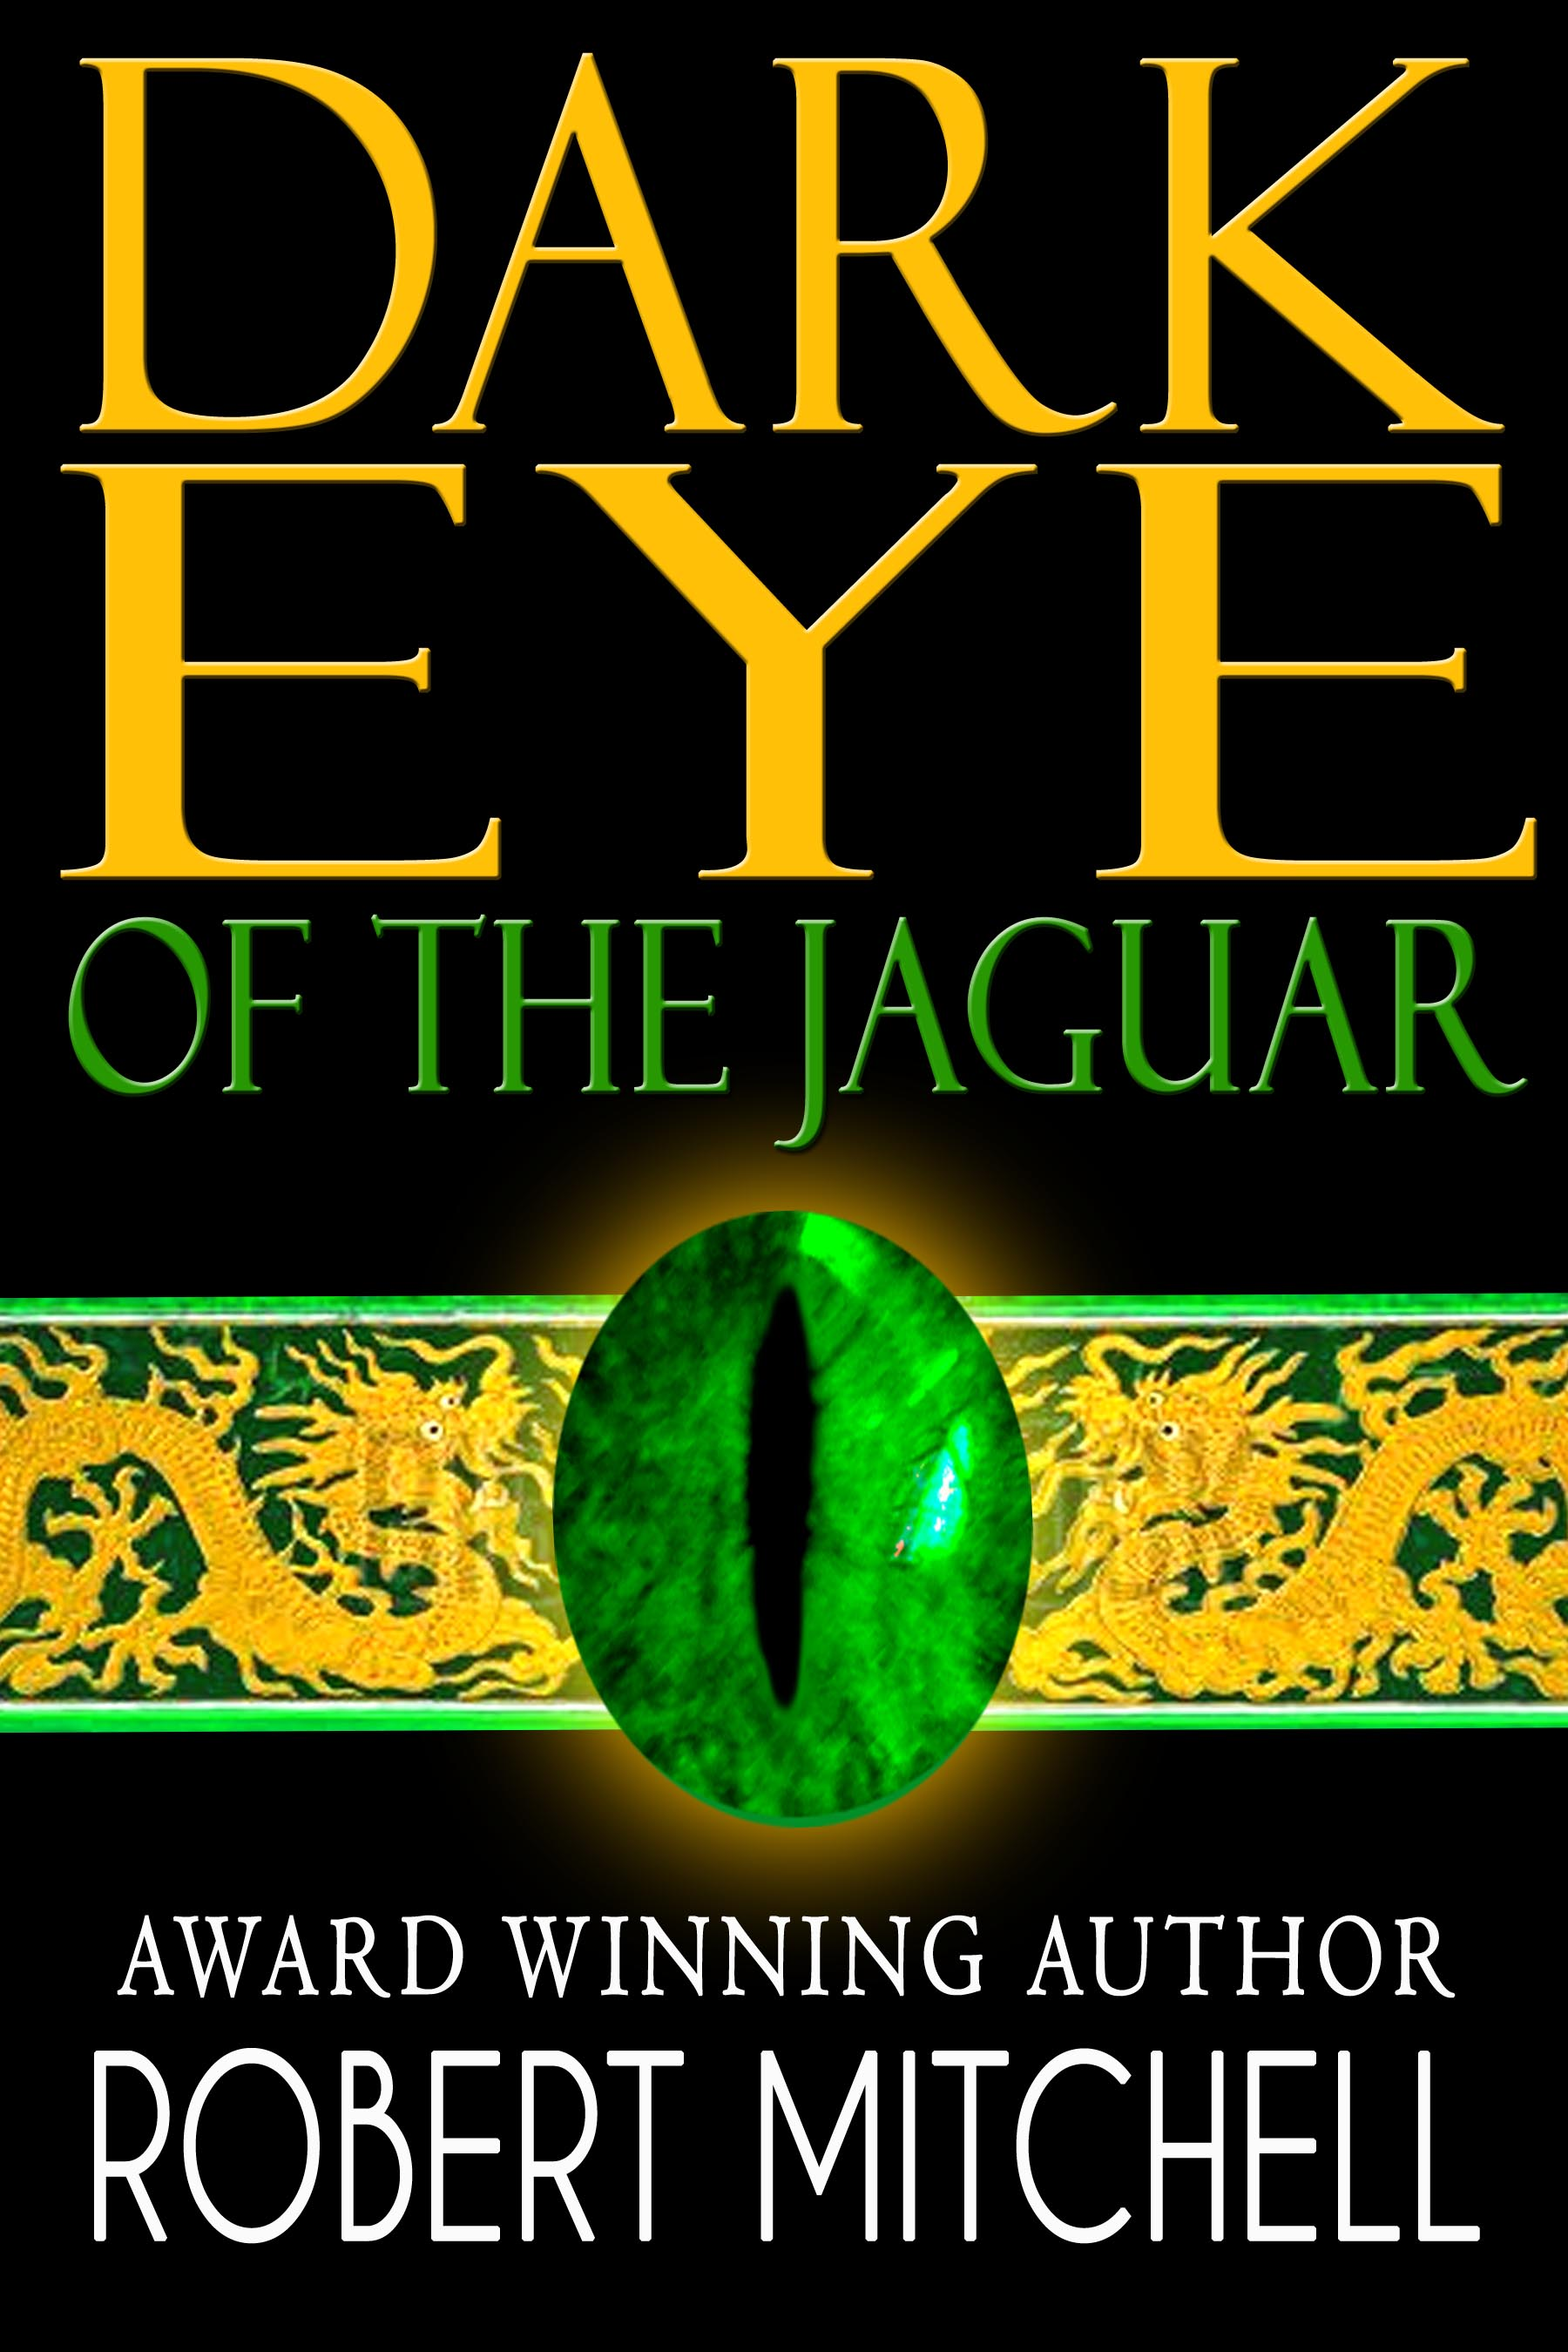 Book Cover Design by gpz - Entry No. 82 in the Book Cover Design Contest Imaginative Book Cover Design for Dark Eye of the Jaguar.